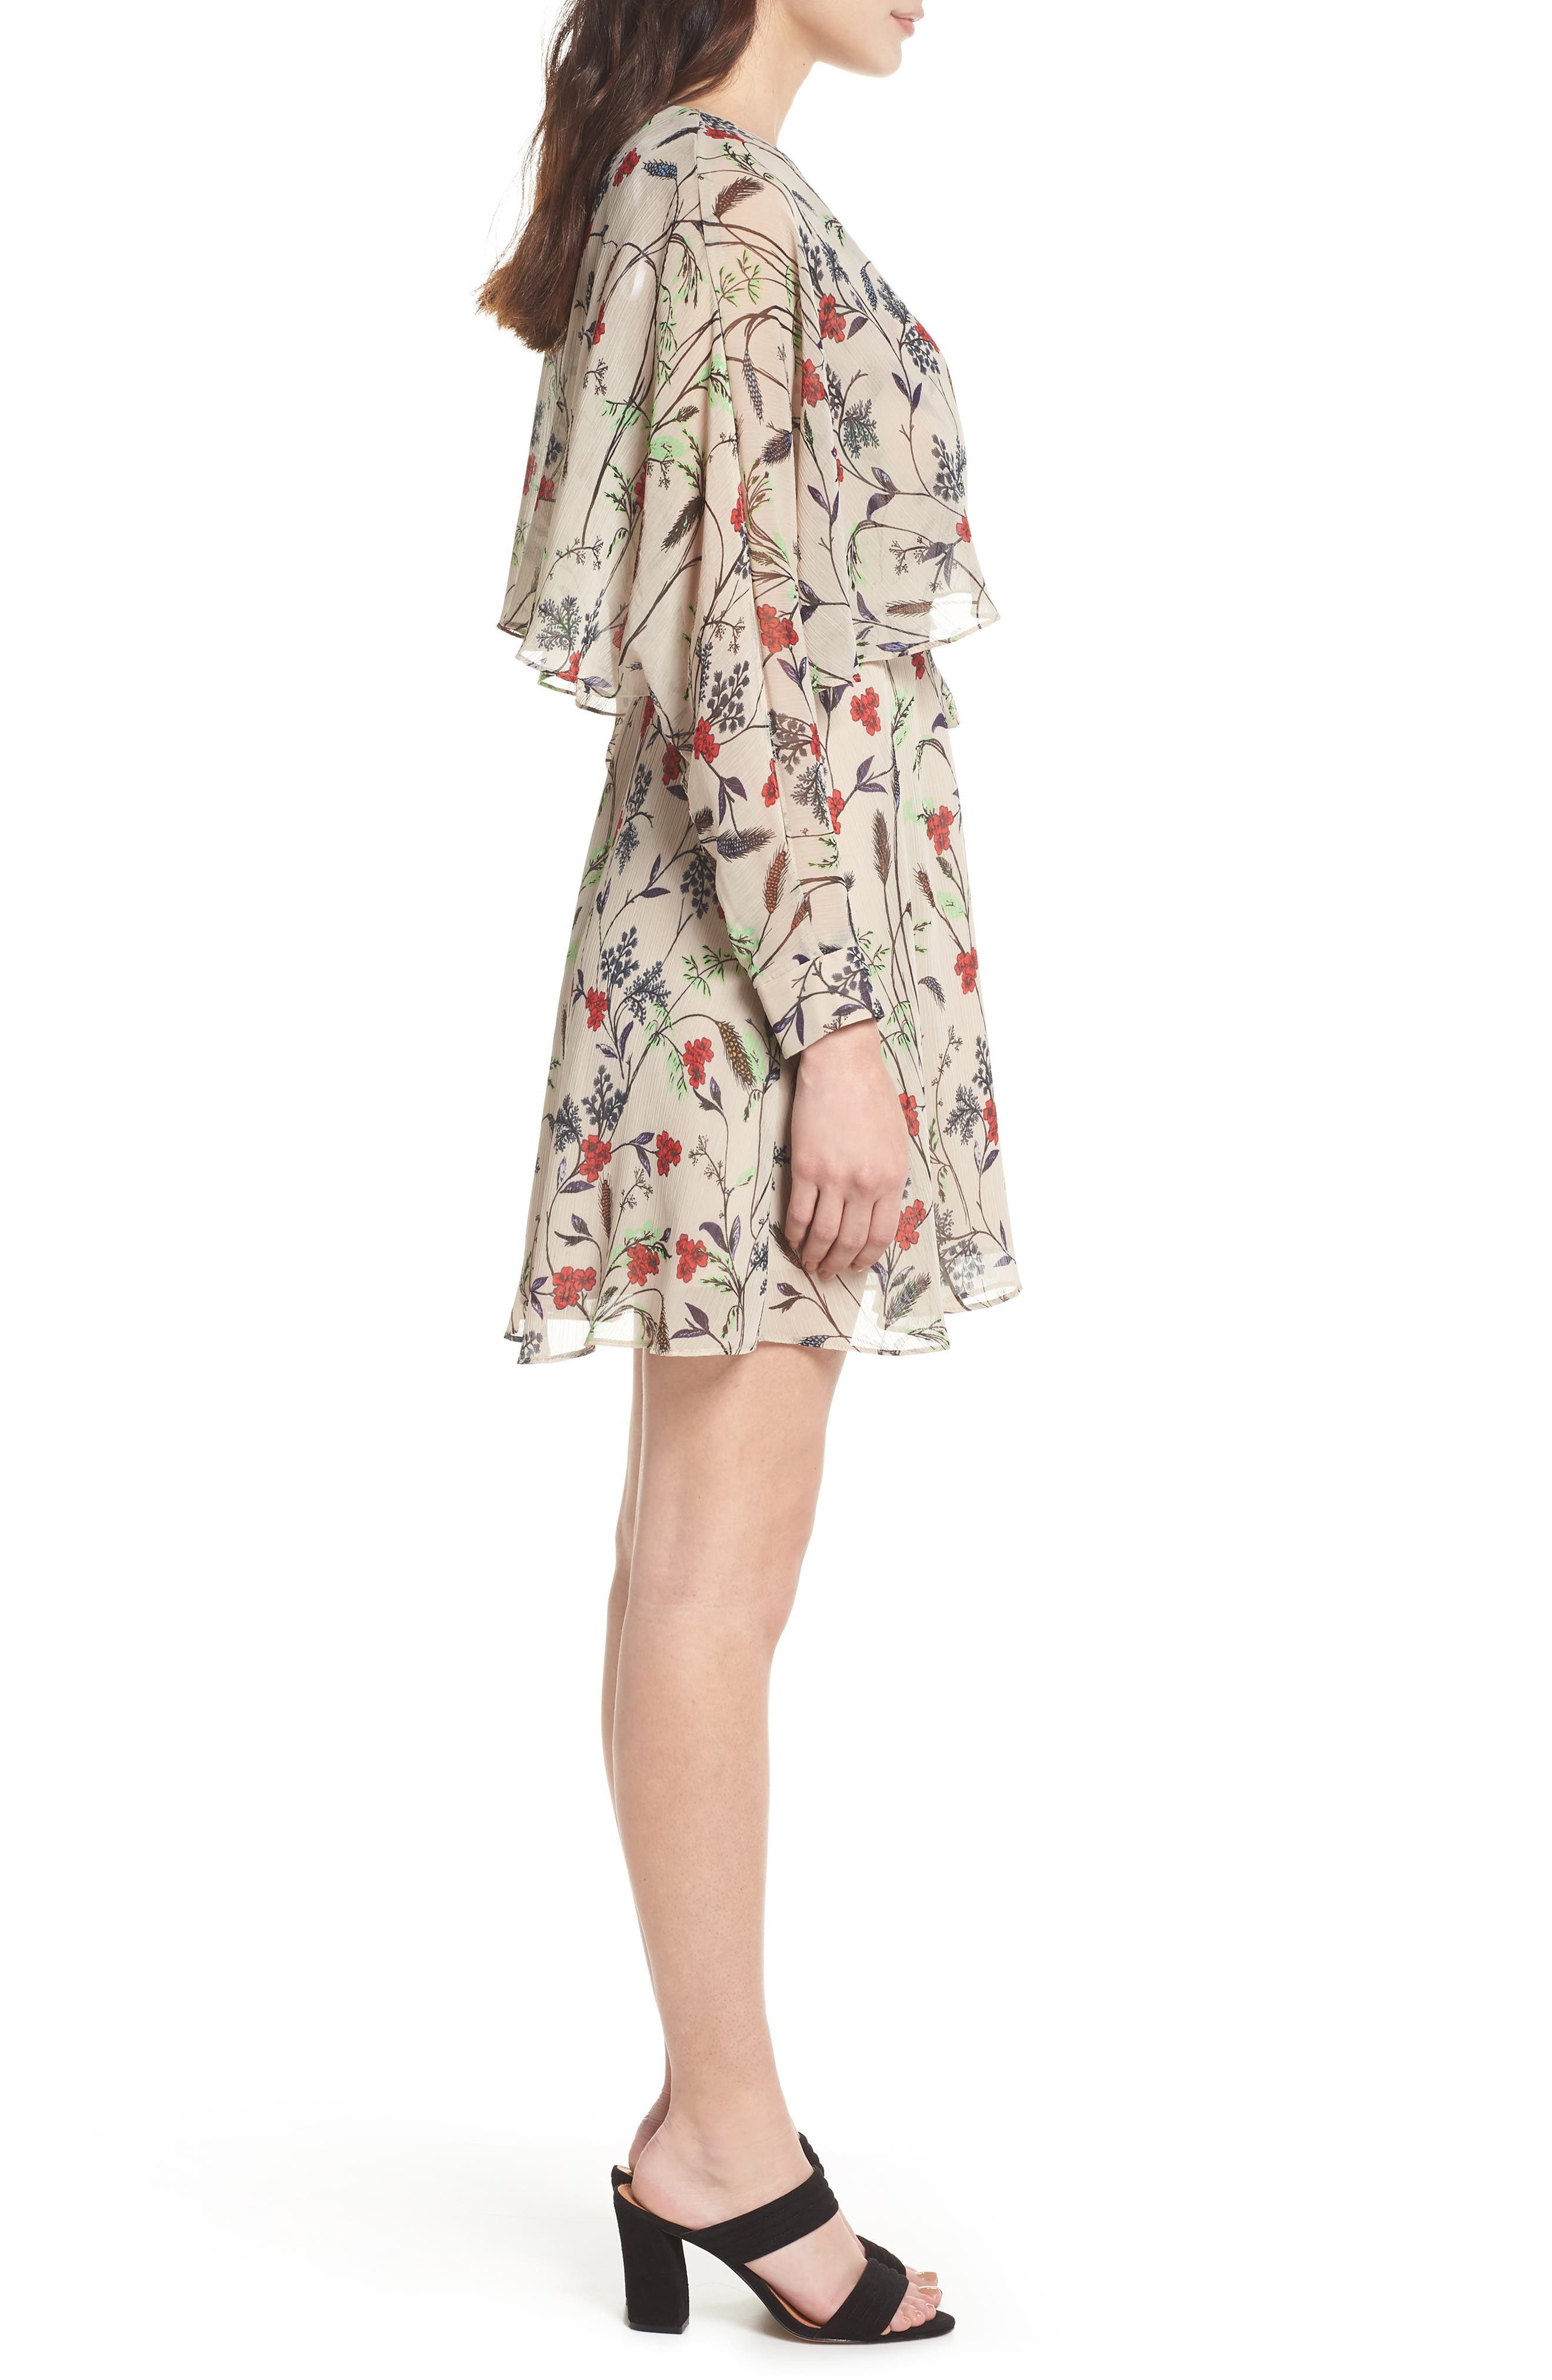 Yoryu Floral Chiffon Dress,                             Alternate thumbnail 3, color,                             Beige/ Red